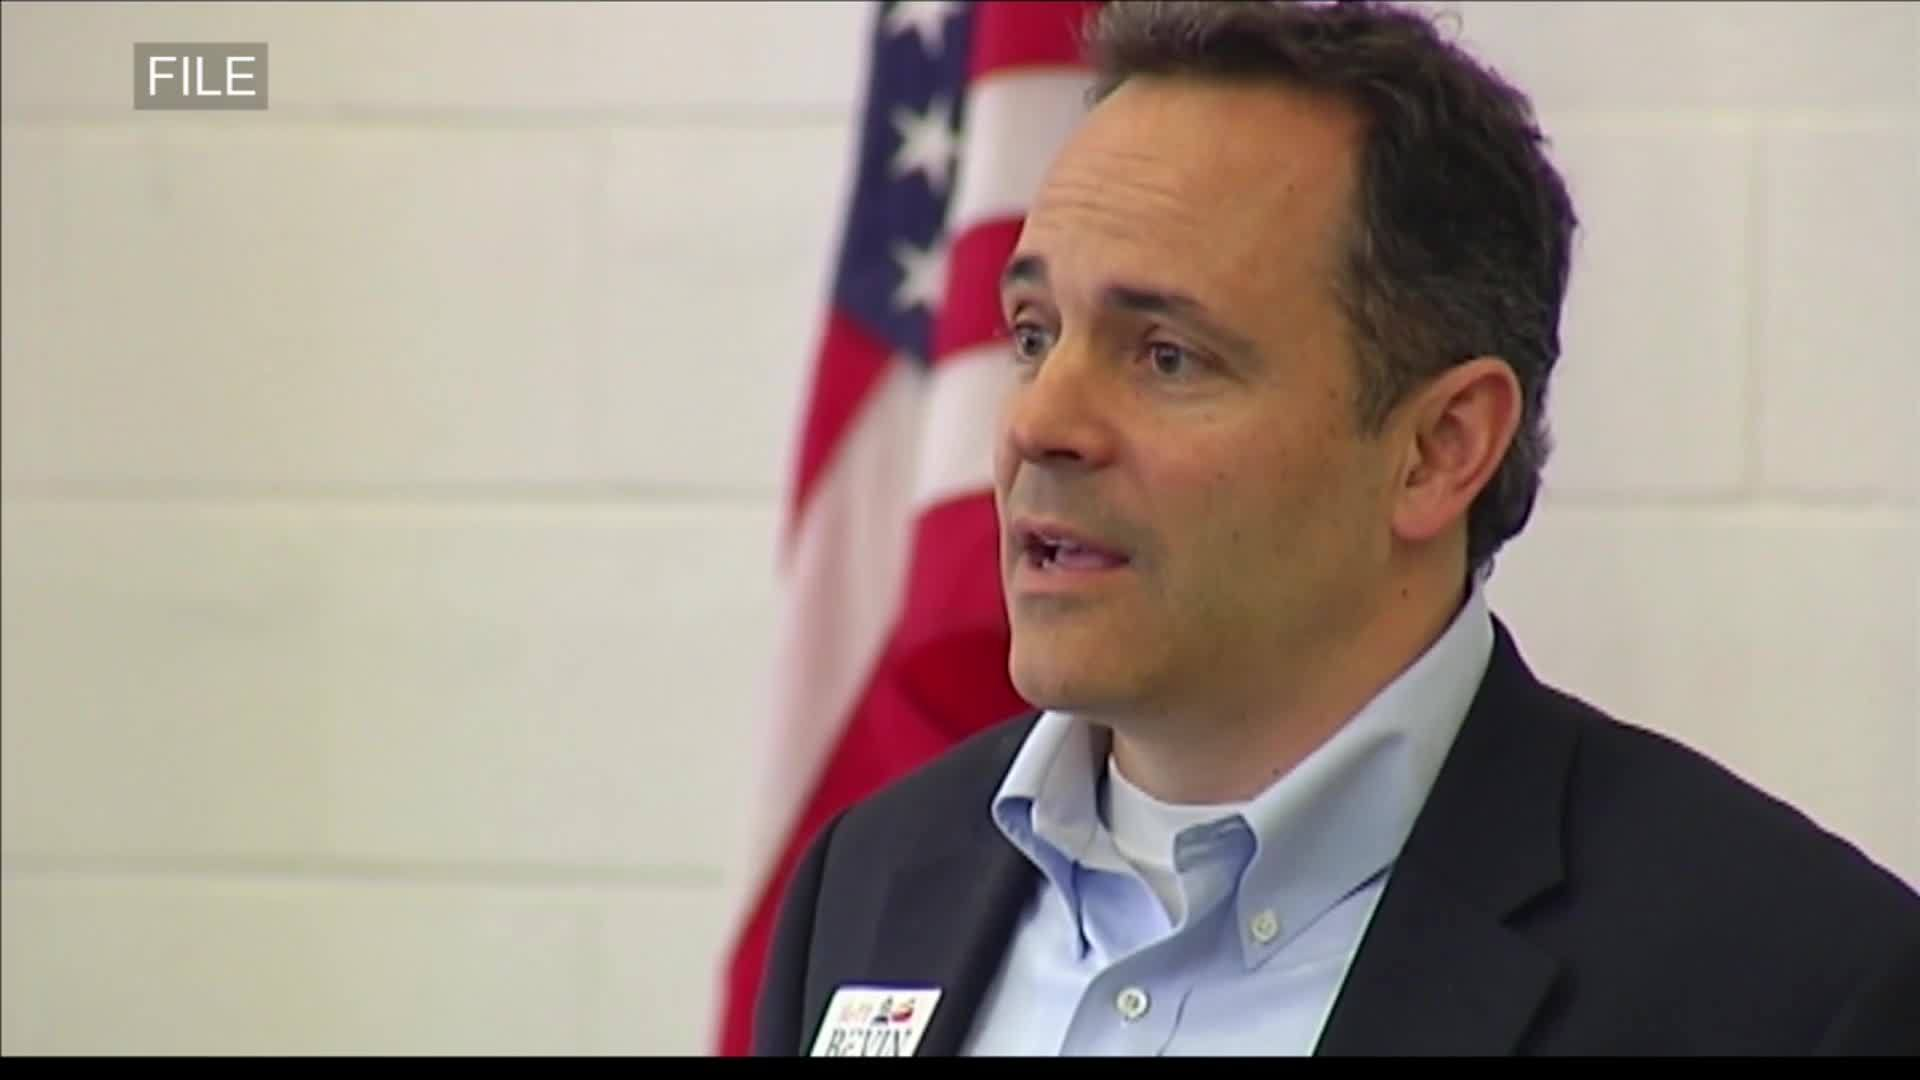 Bevin_to_run_for_reelection_in_2019_7_20190126013244